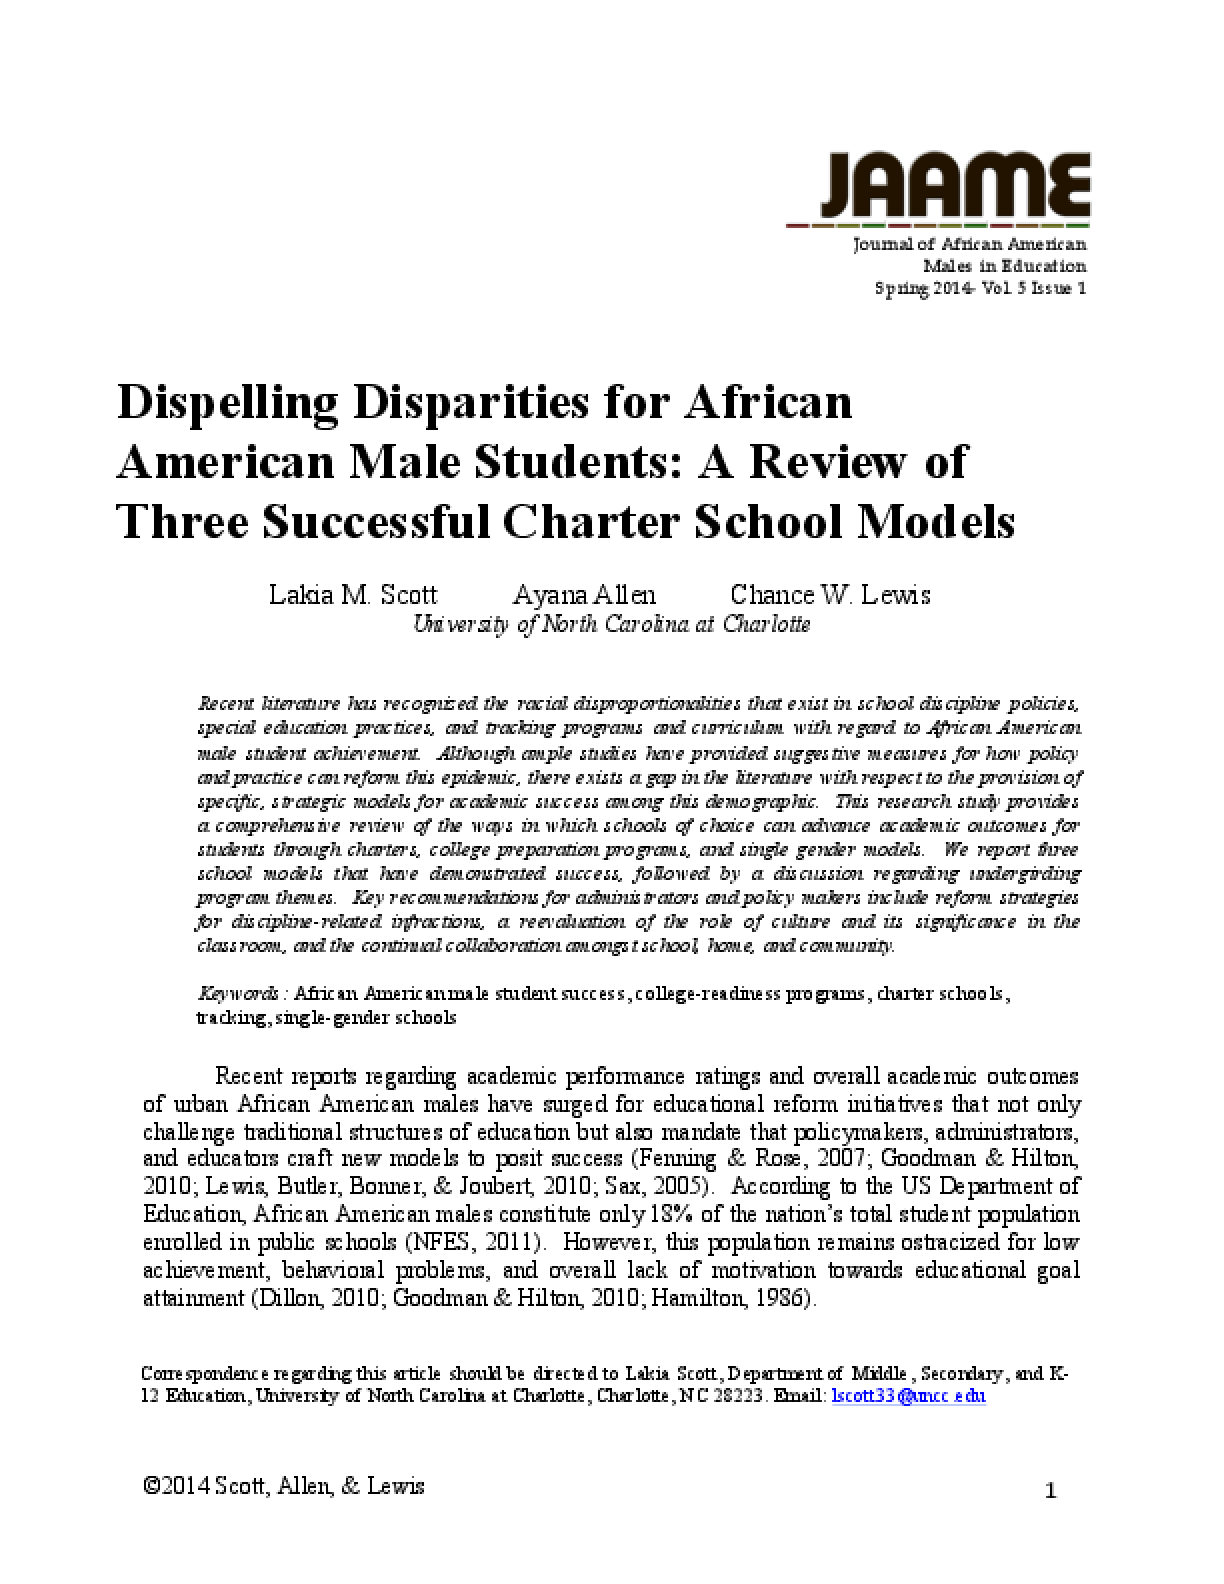 Dispelling Disparities for African American Male Students: A Review of Three Successful Charter School Models